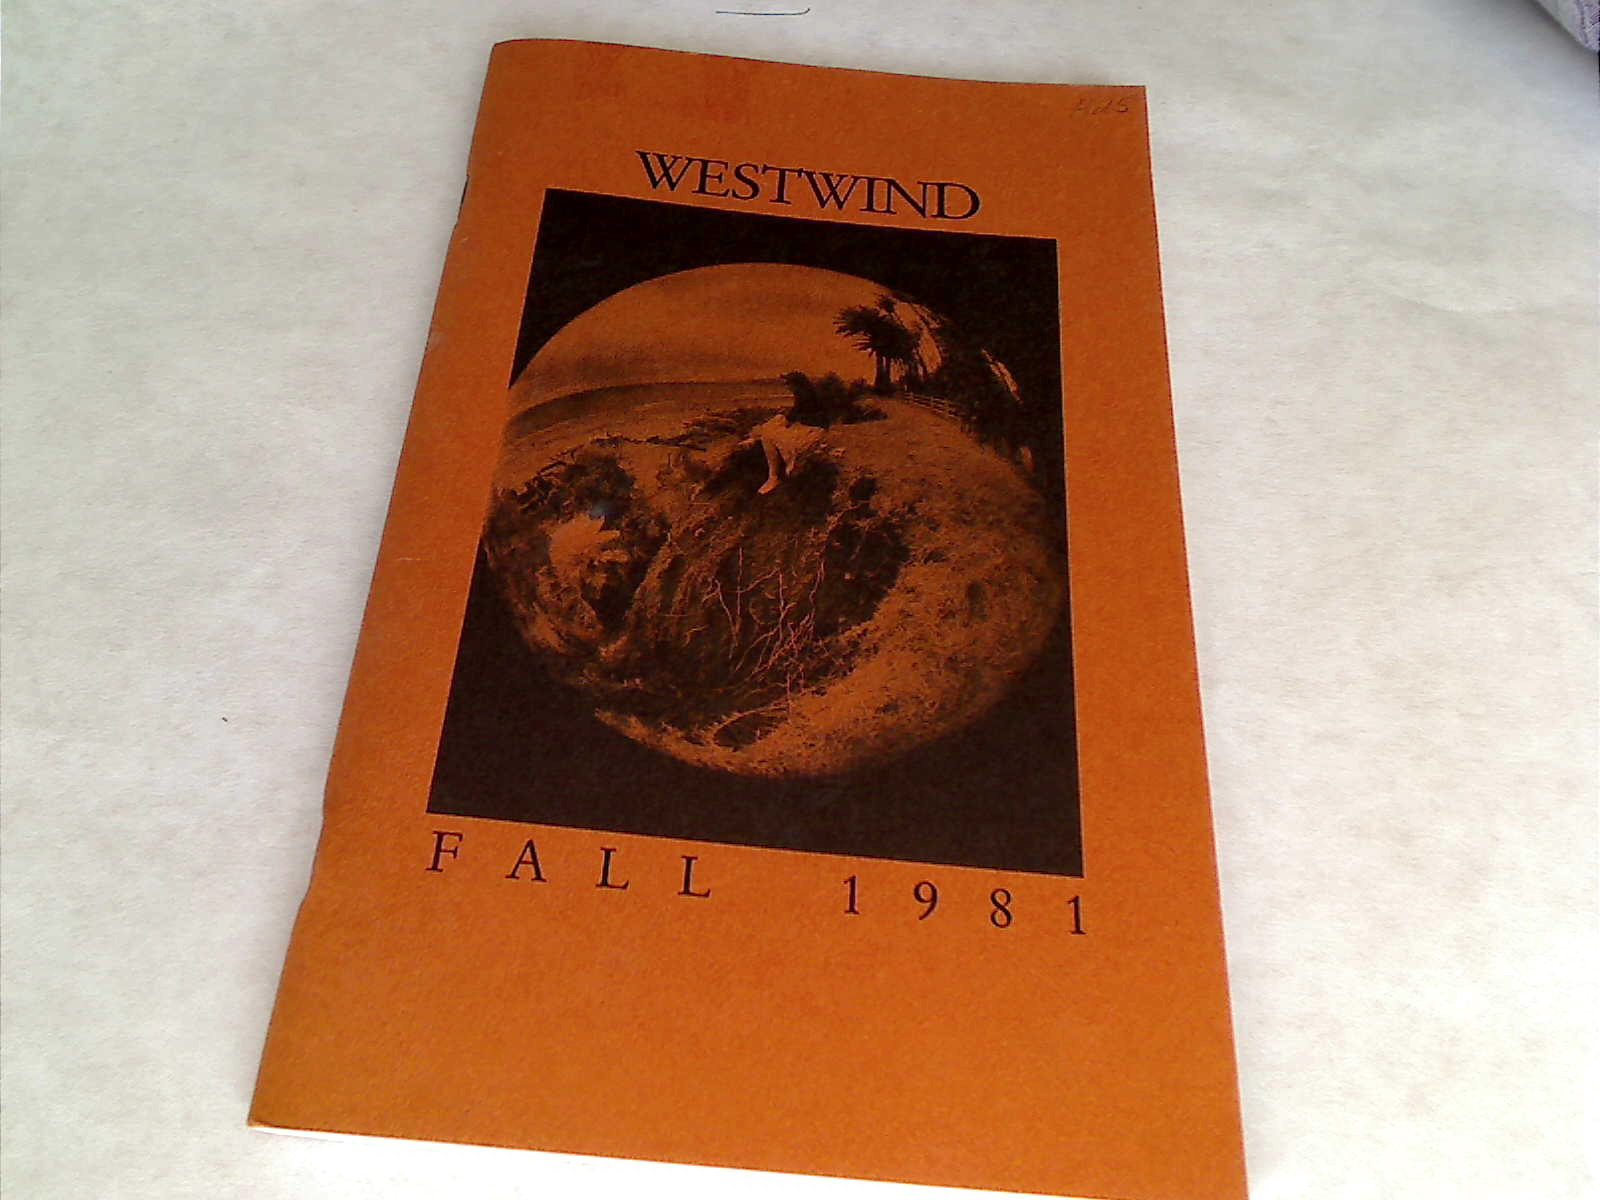 Westwind. UCLA's Journal of Fine Arts. Fall 1981.